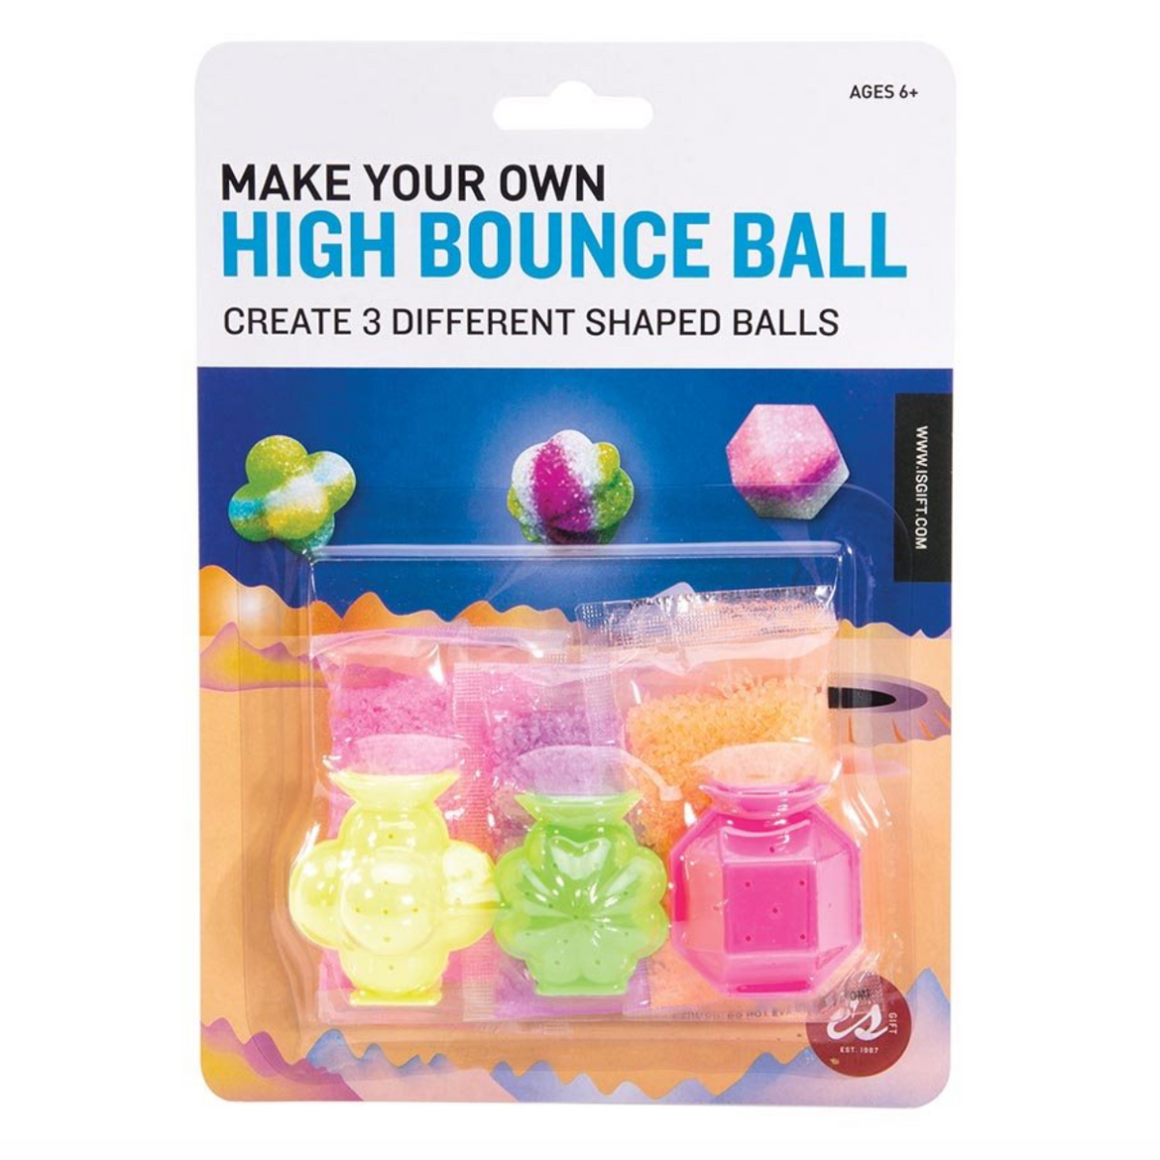 Make Your Own High Bounce Ball Packaging featuring the moulds and a visualisation of the final product